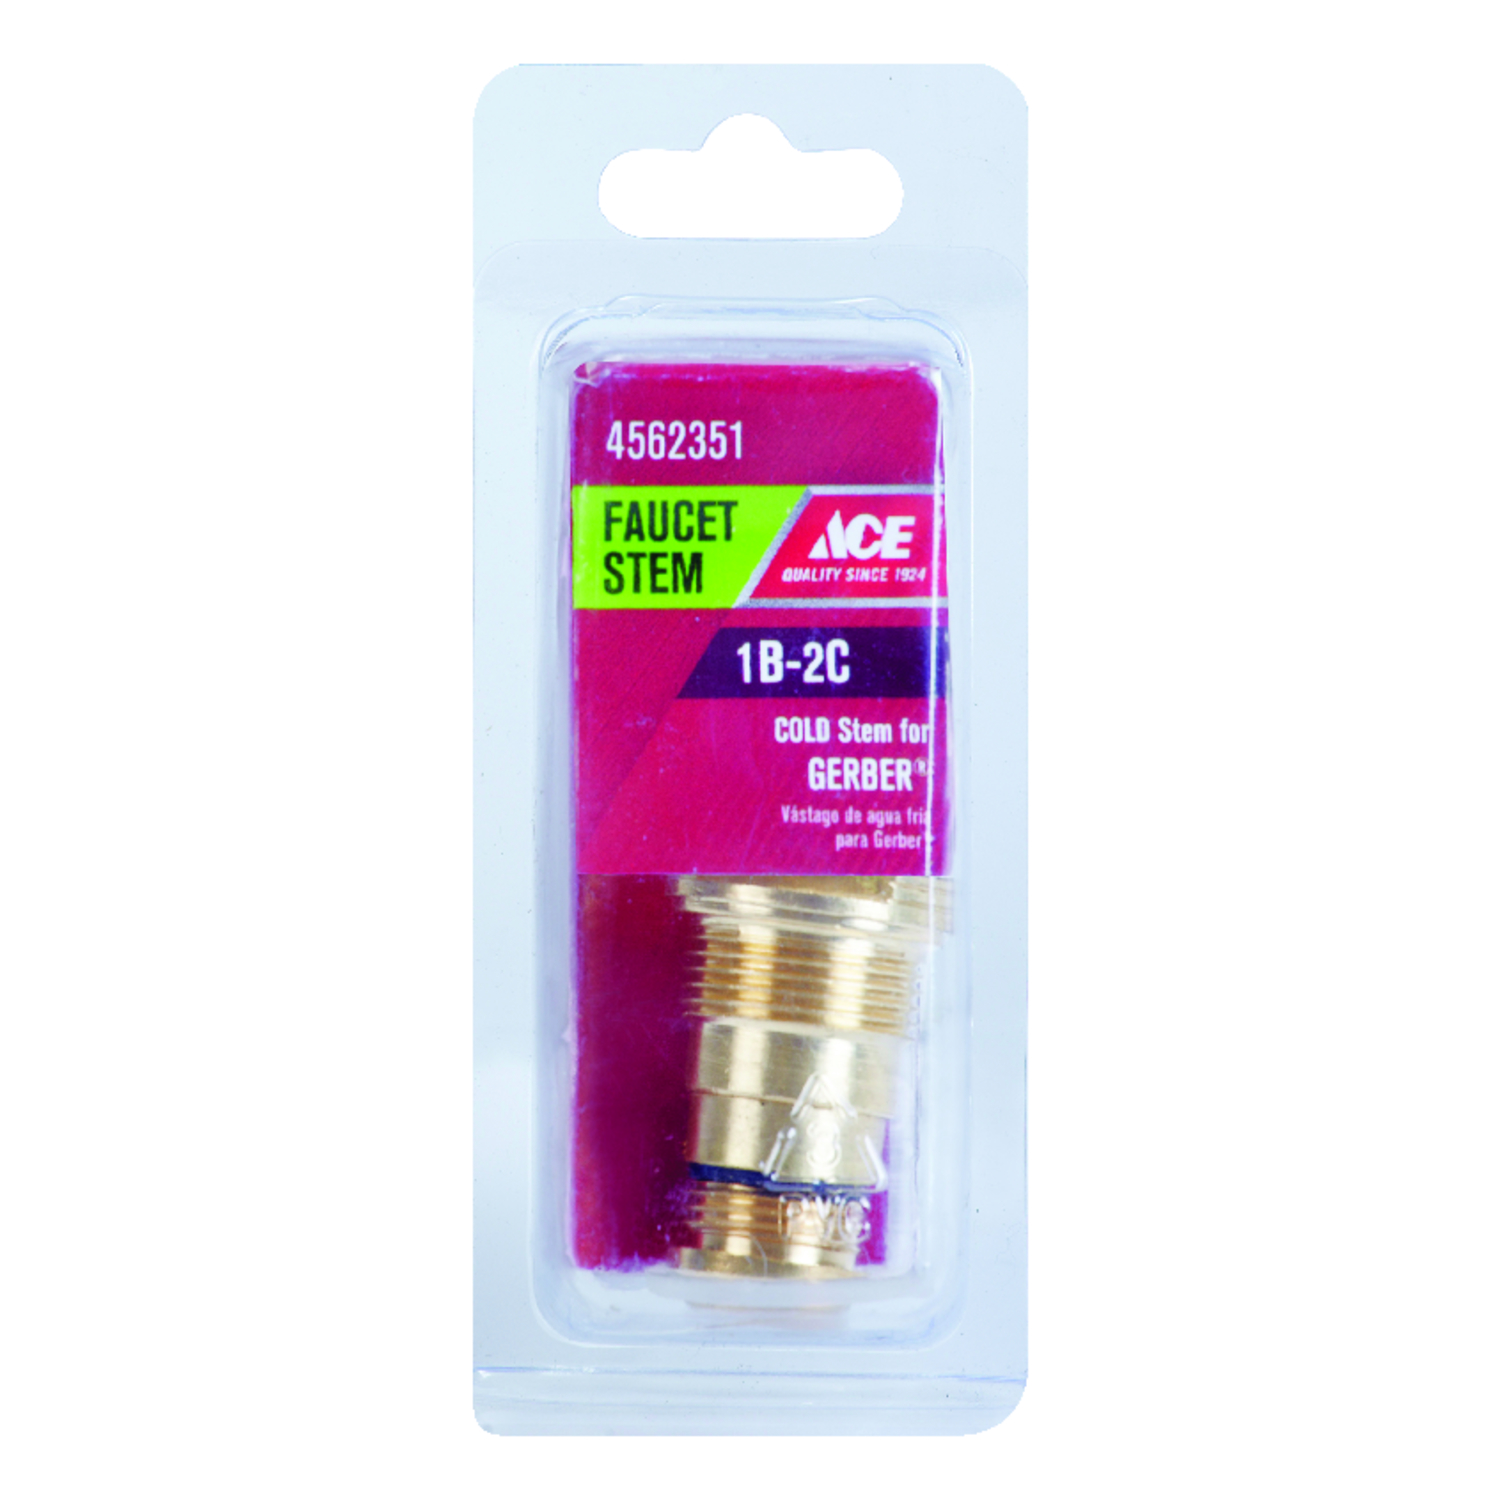 Ace  Low Lead  Cold  1B-2C  Faucet Stem  For Gerber